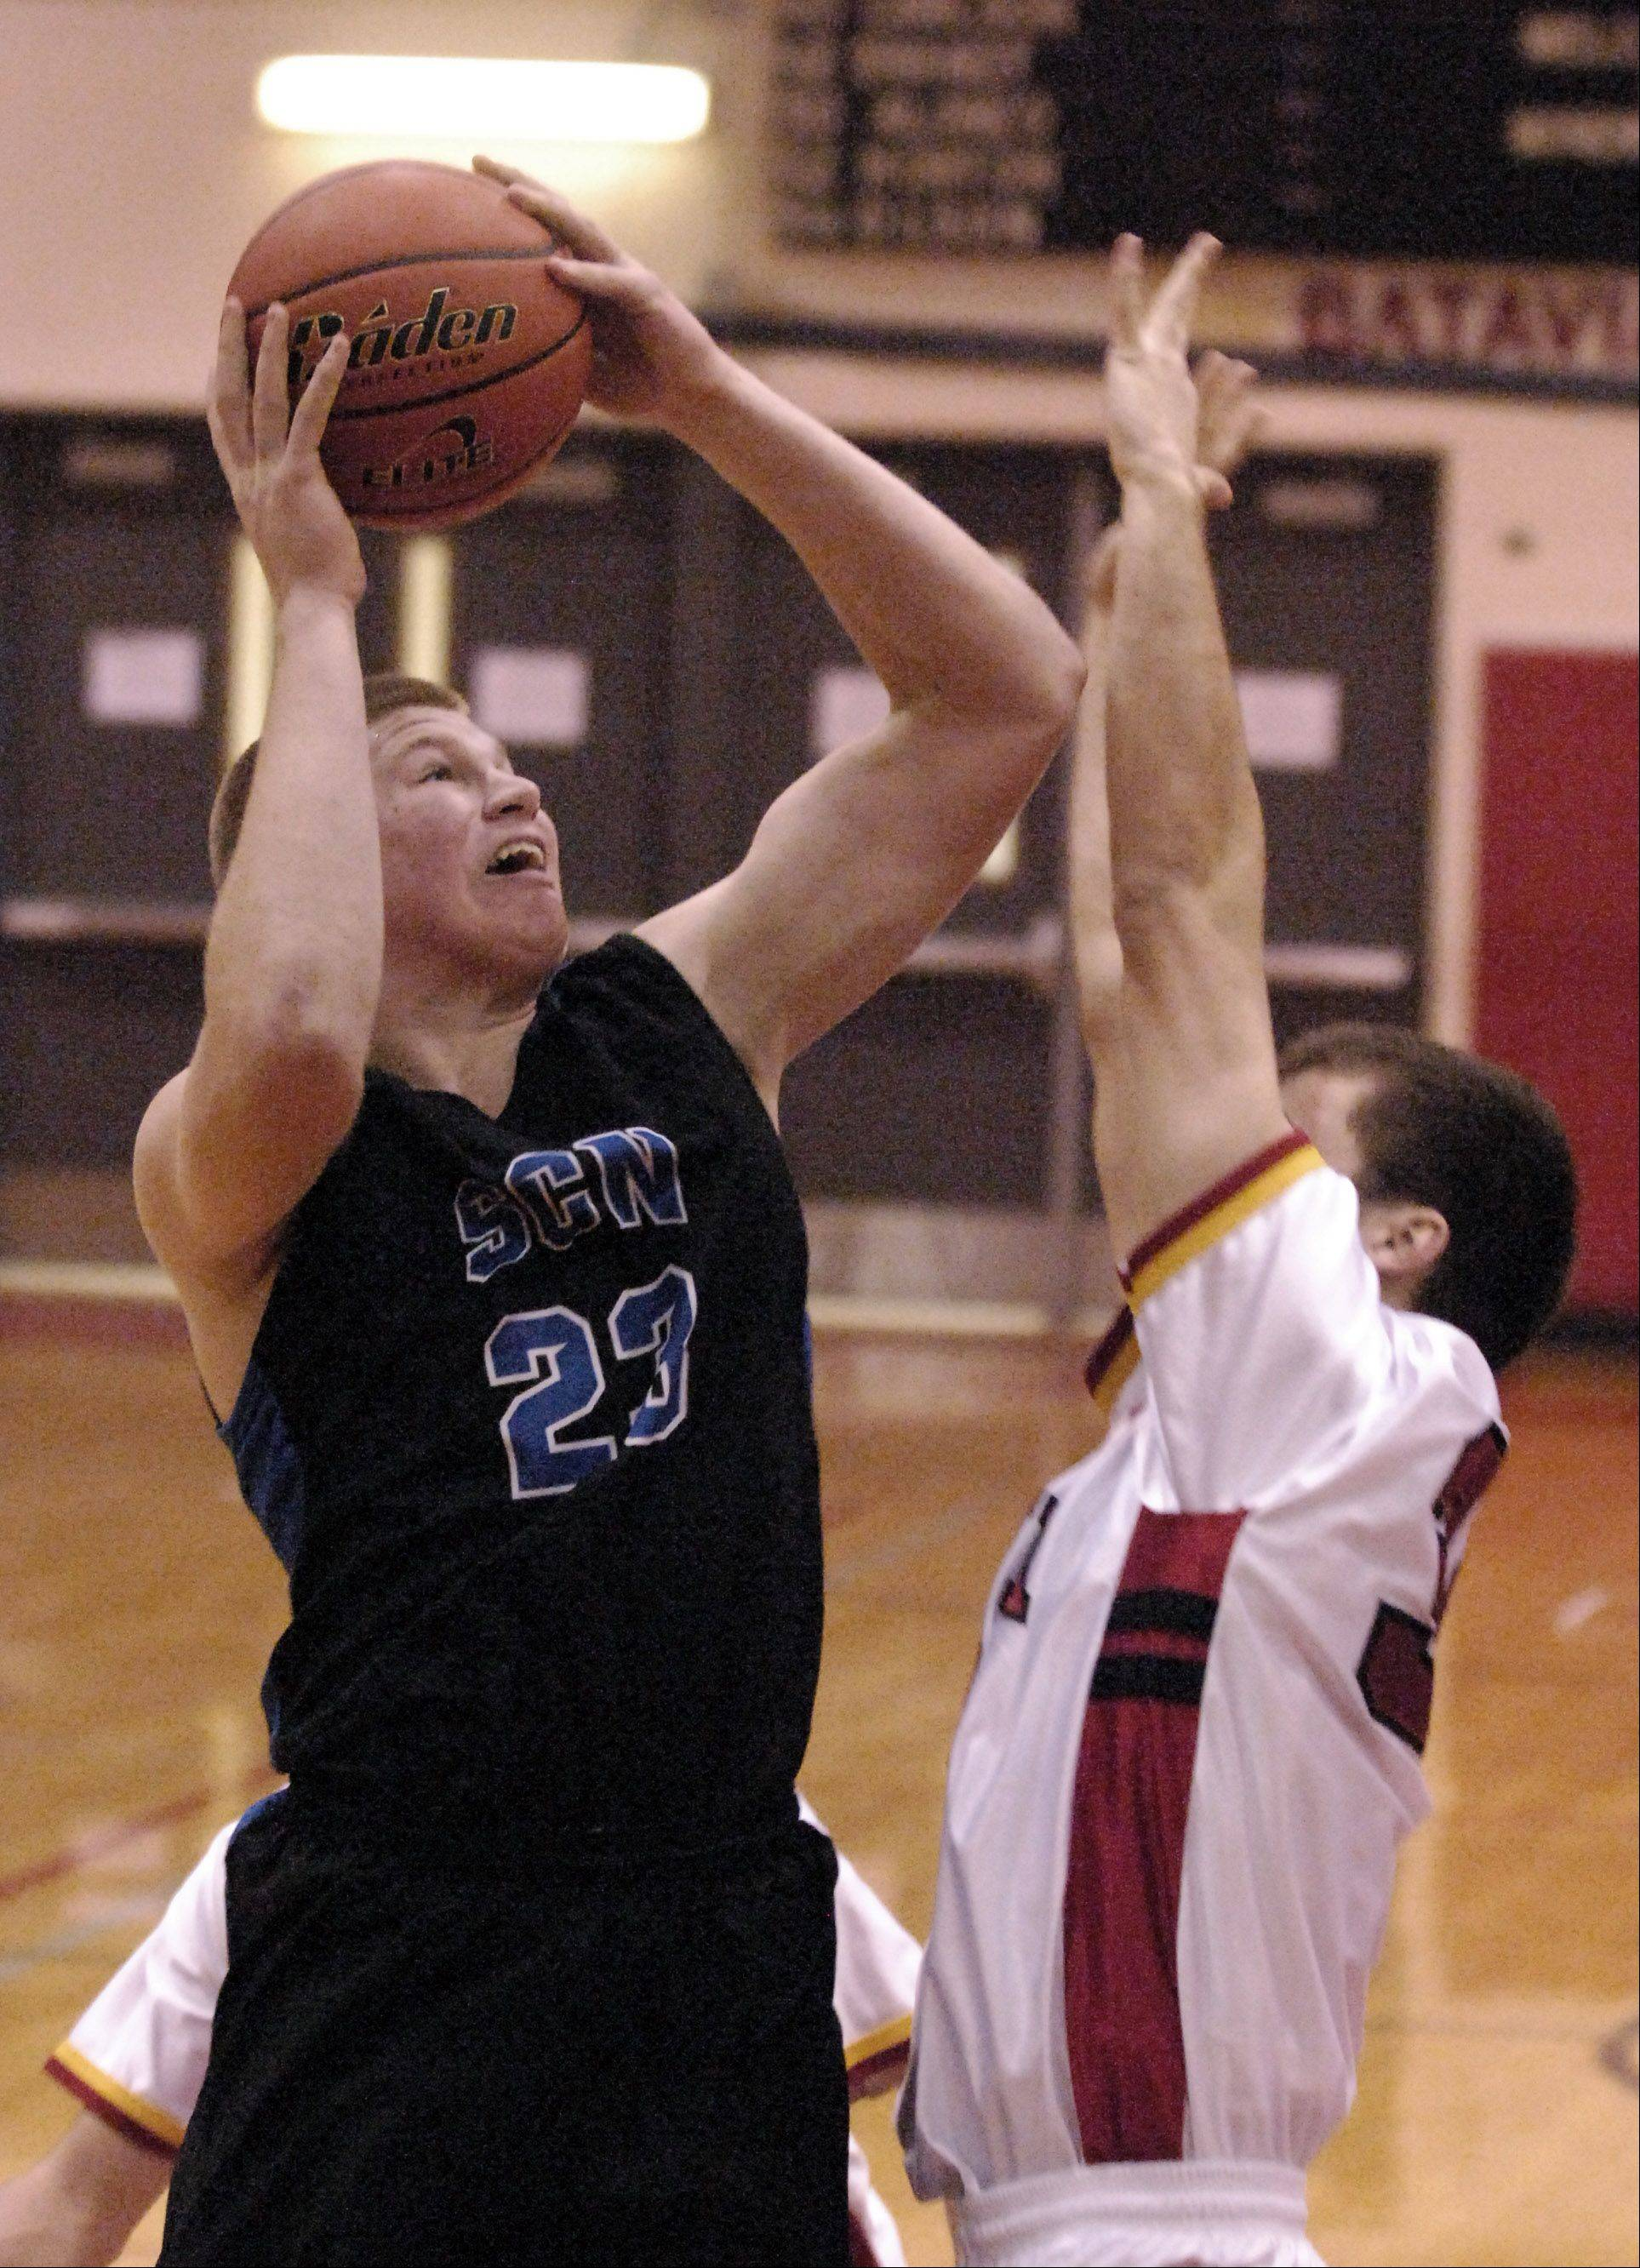 St. Charles North's Justin Stanko goes up and scores against Batavia.